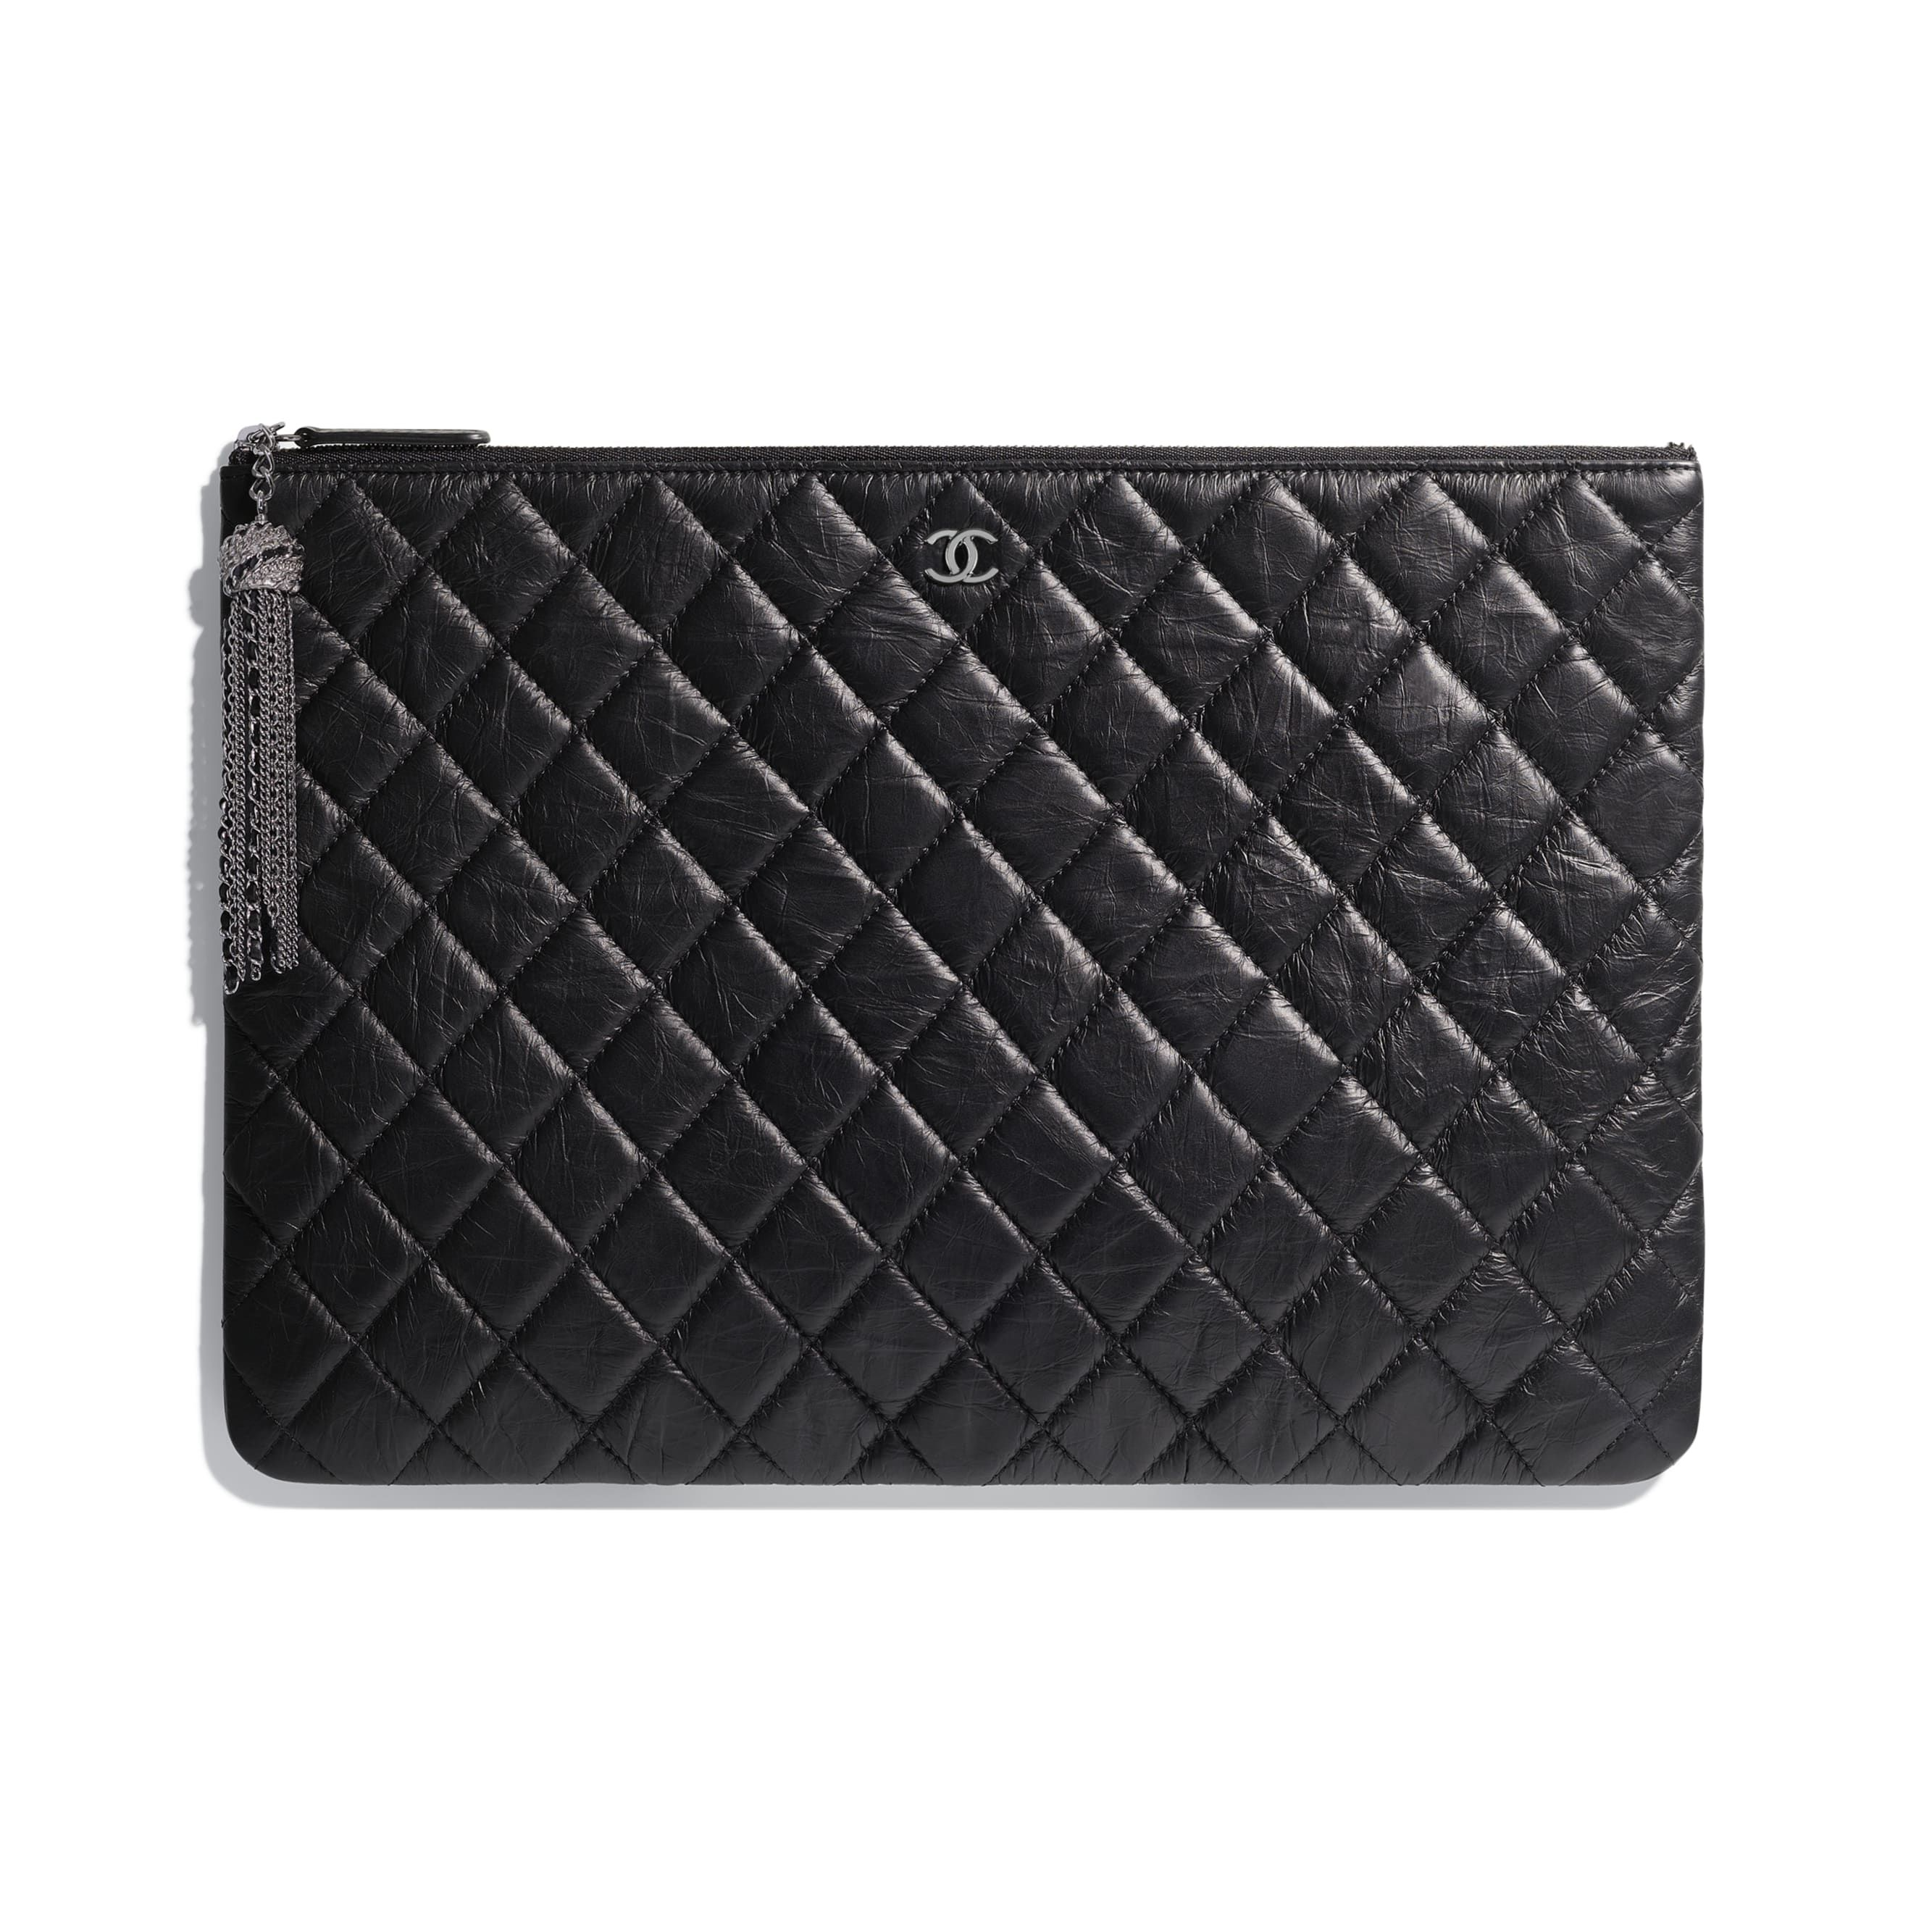 d53c2188d530 Chanel - FW2018/19 | Iridescent aged calfskin & ruthenium-finish metal black  classic pouch ($1,800)